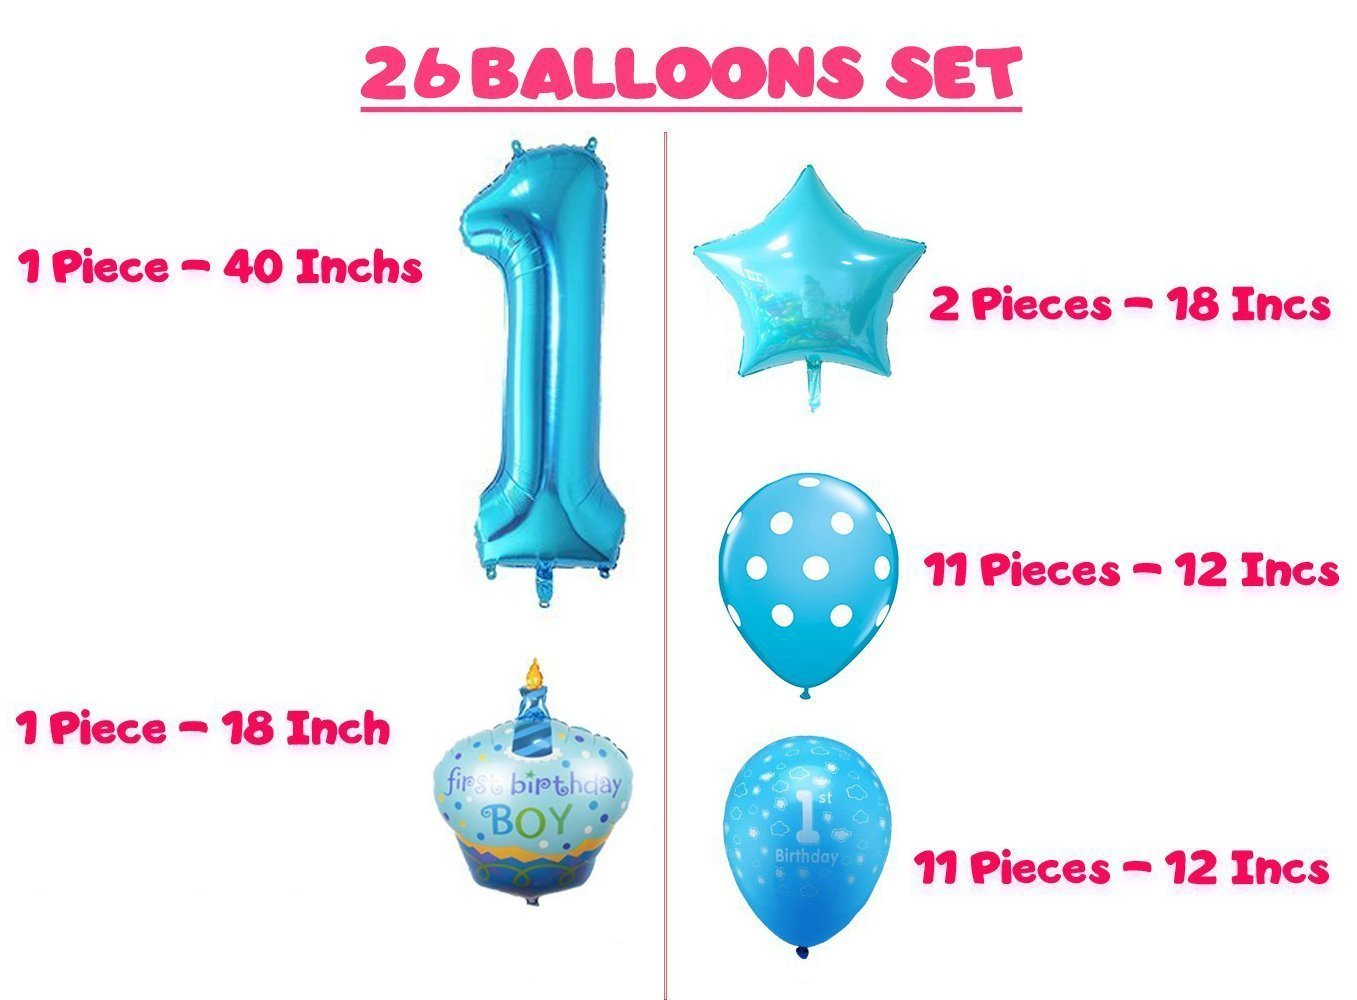 photo relating to 1st Birthday Party Checklist Printable called 1st Birthday Boy Balloons Fixed - Reward - Printable Social gathering